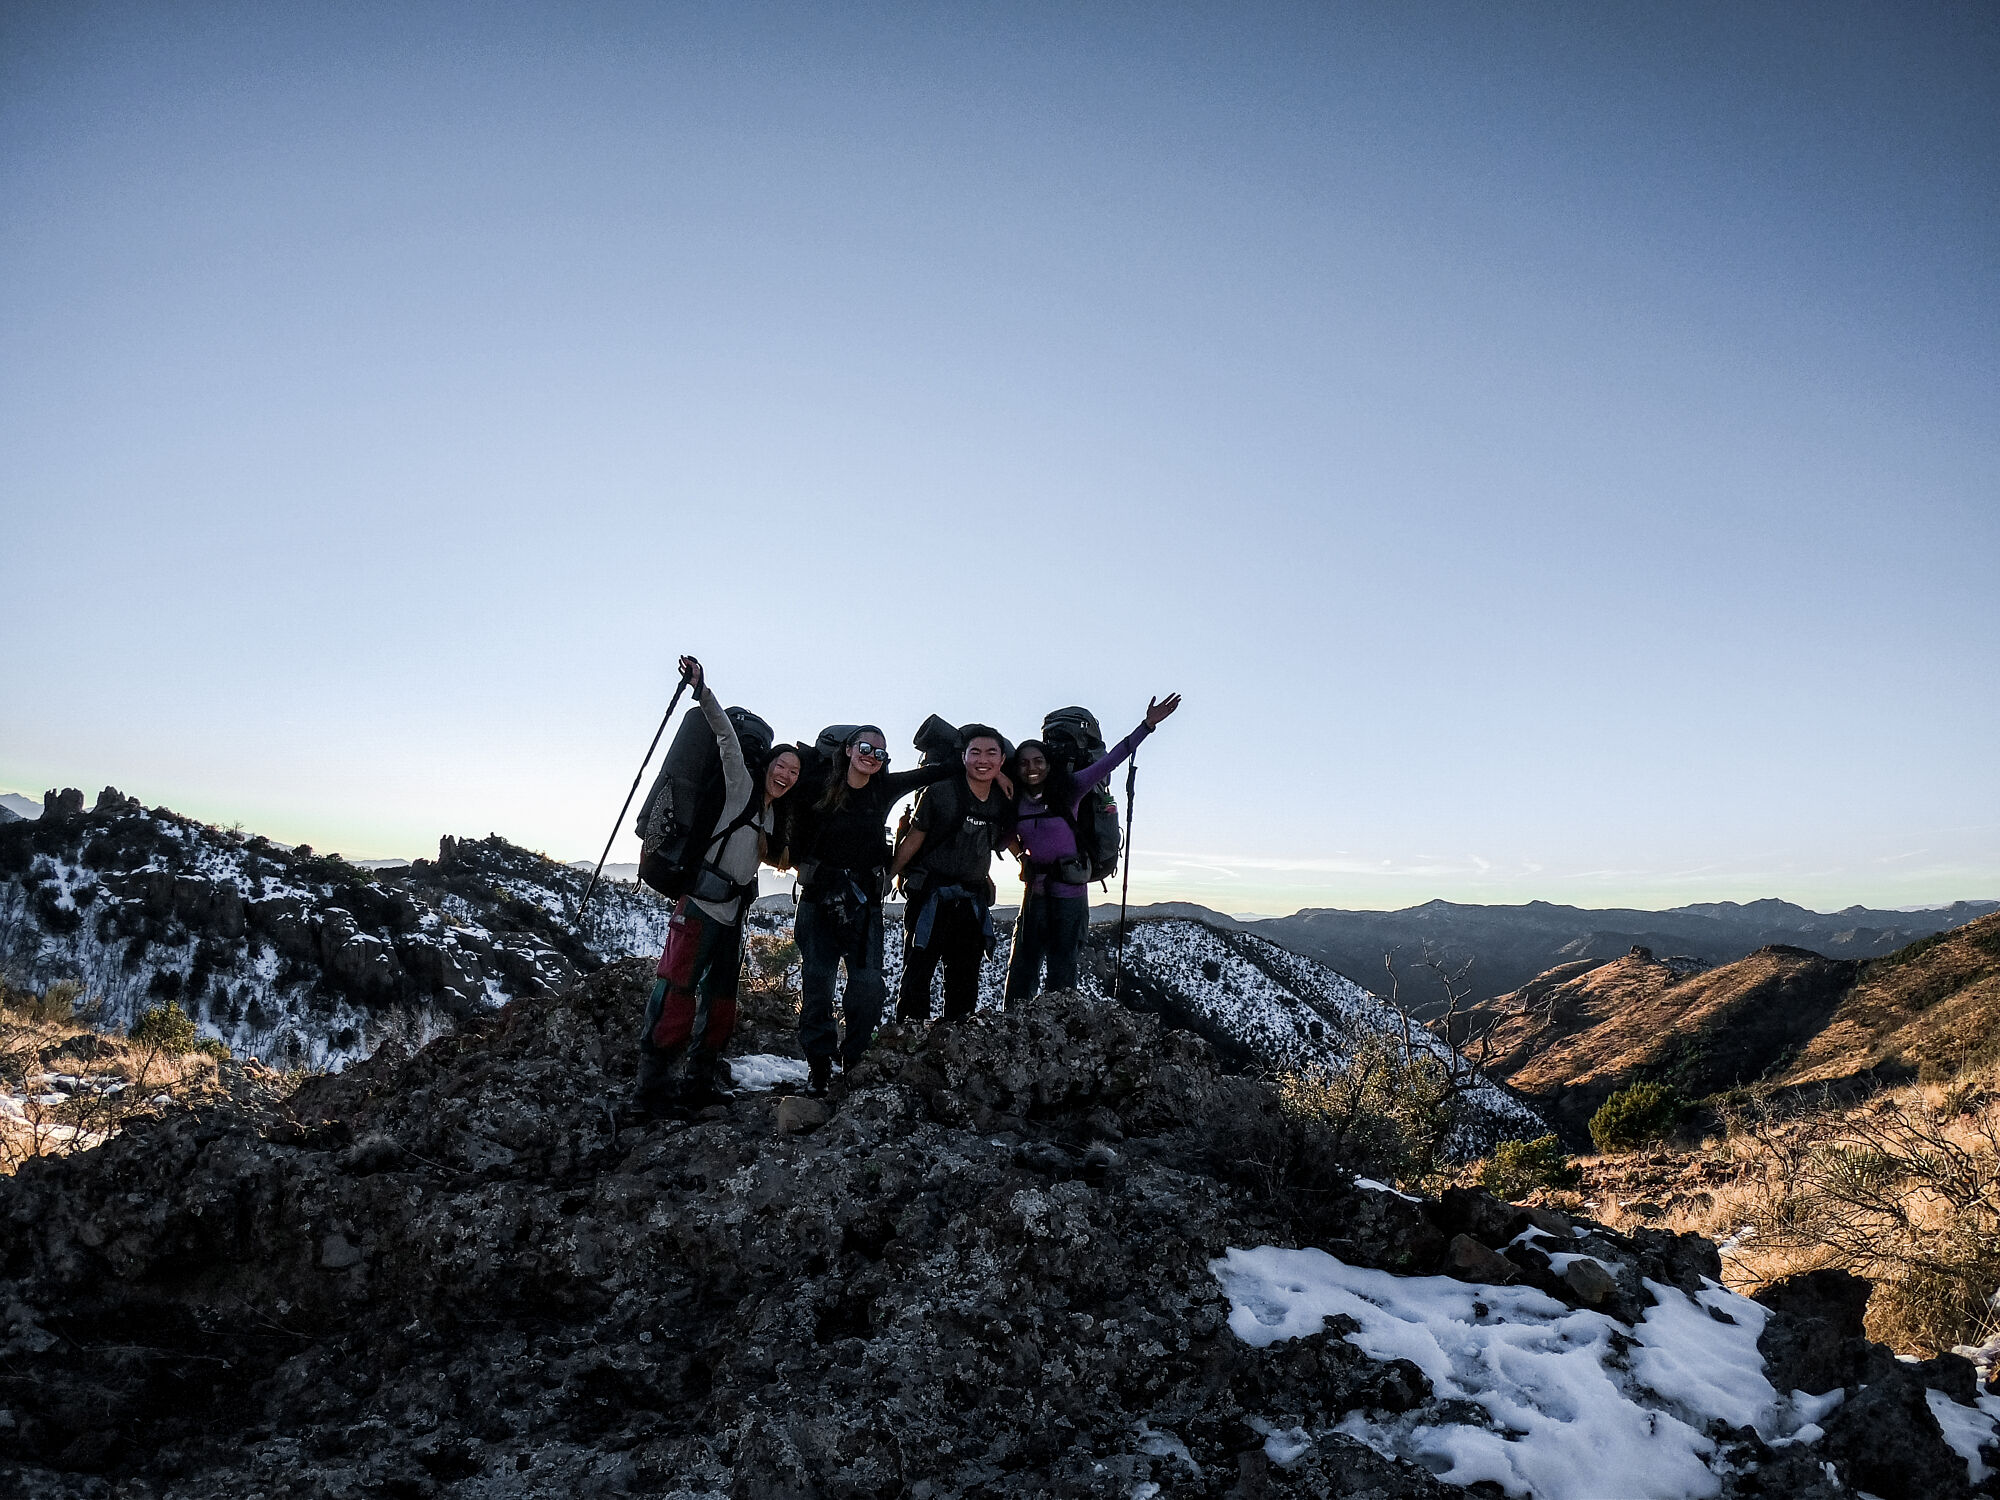 Business school students on a NOLS expedition smile for a photo on top of a snowy mound.